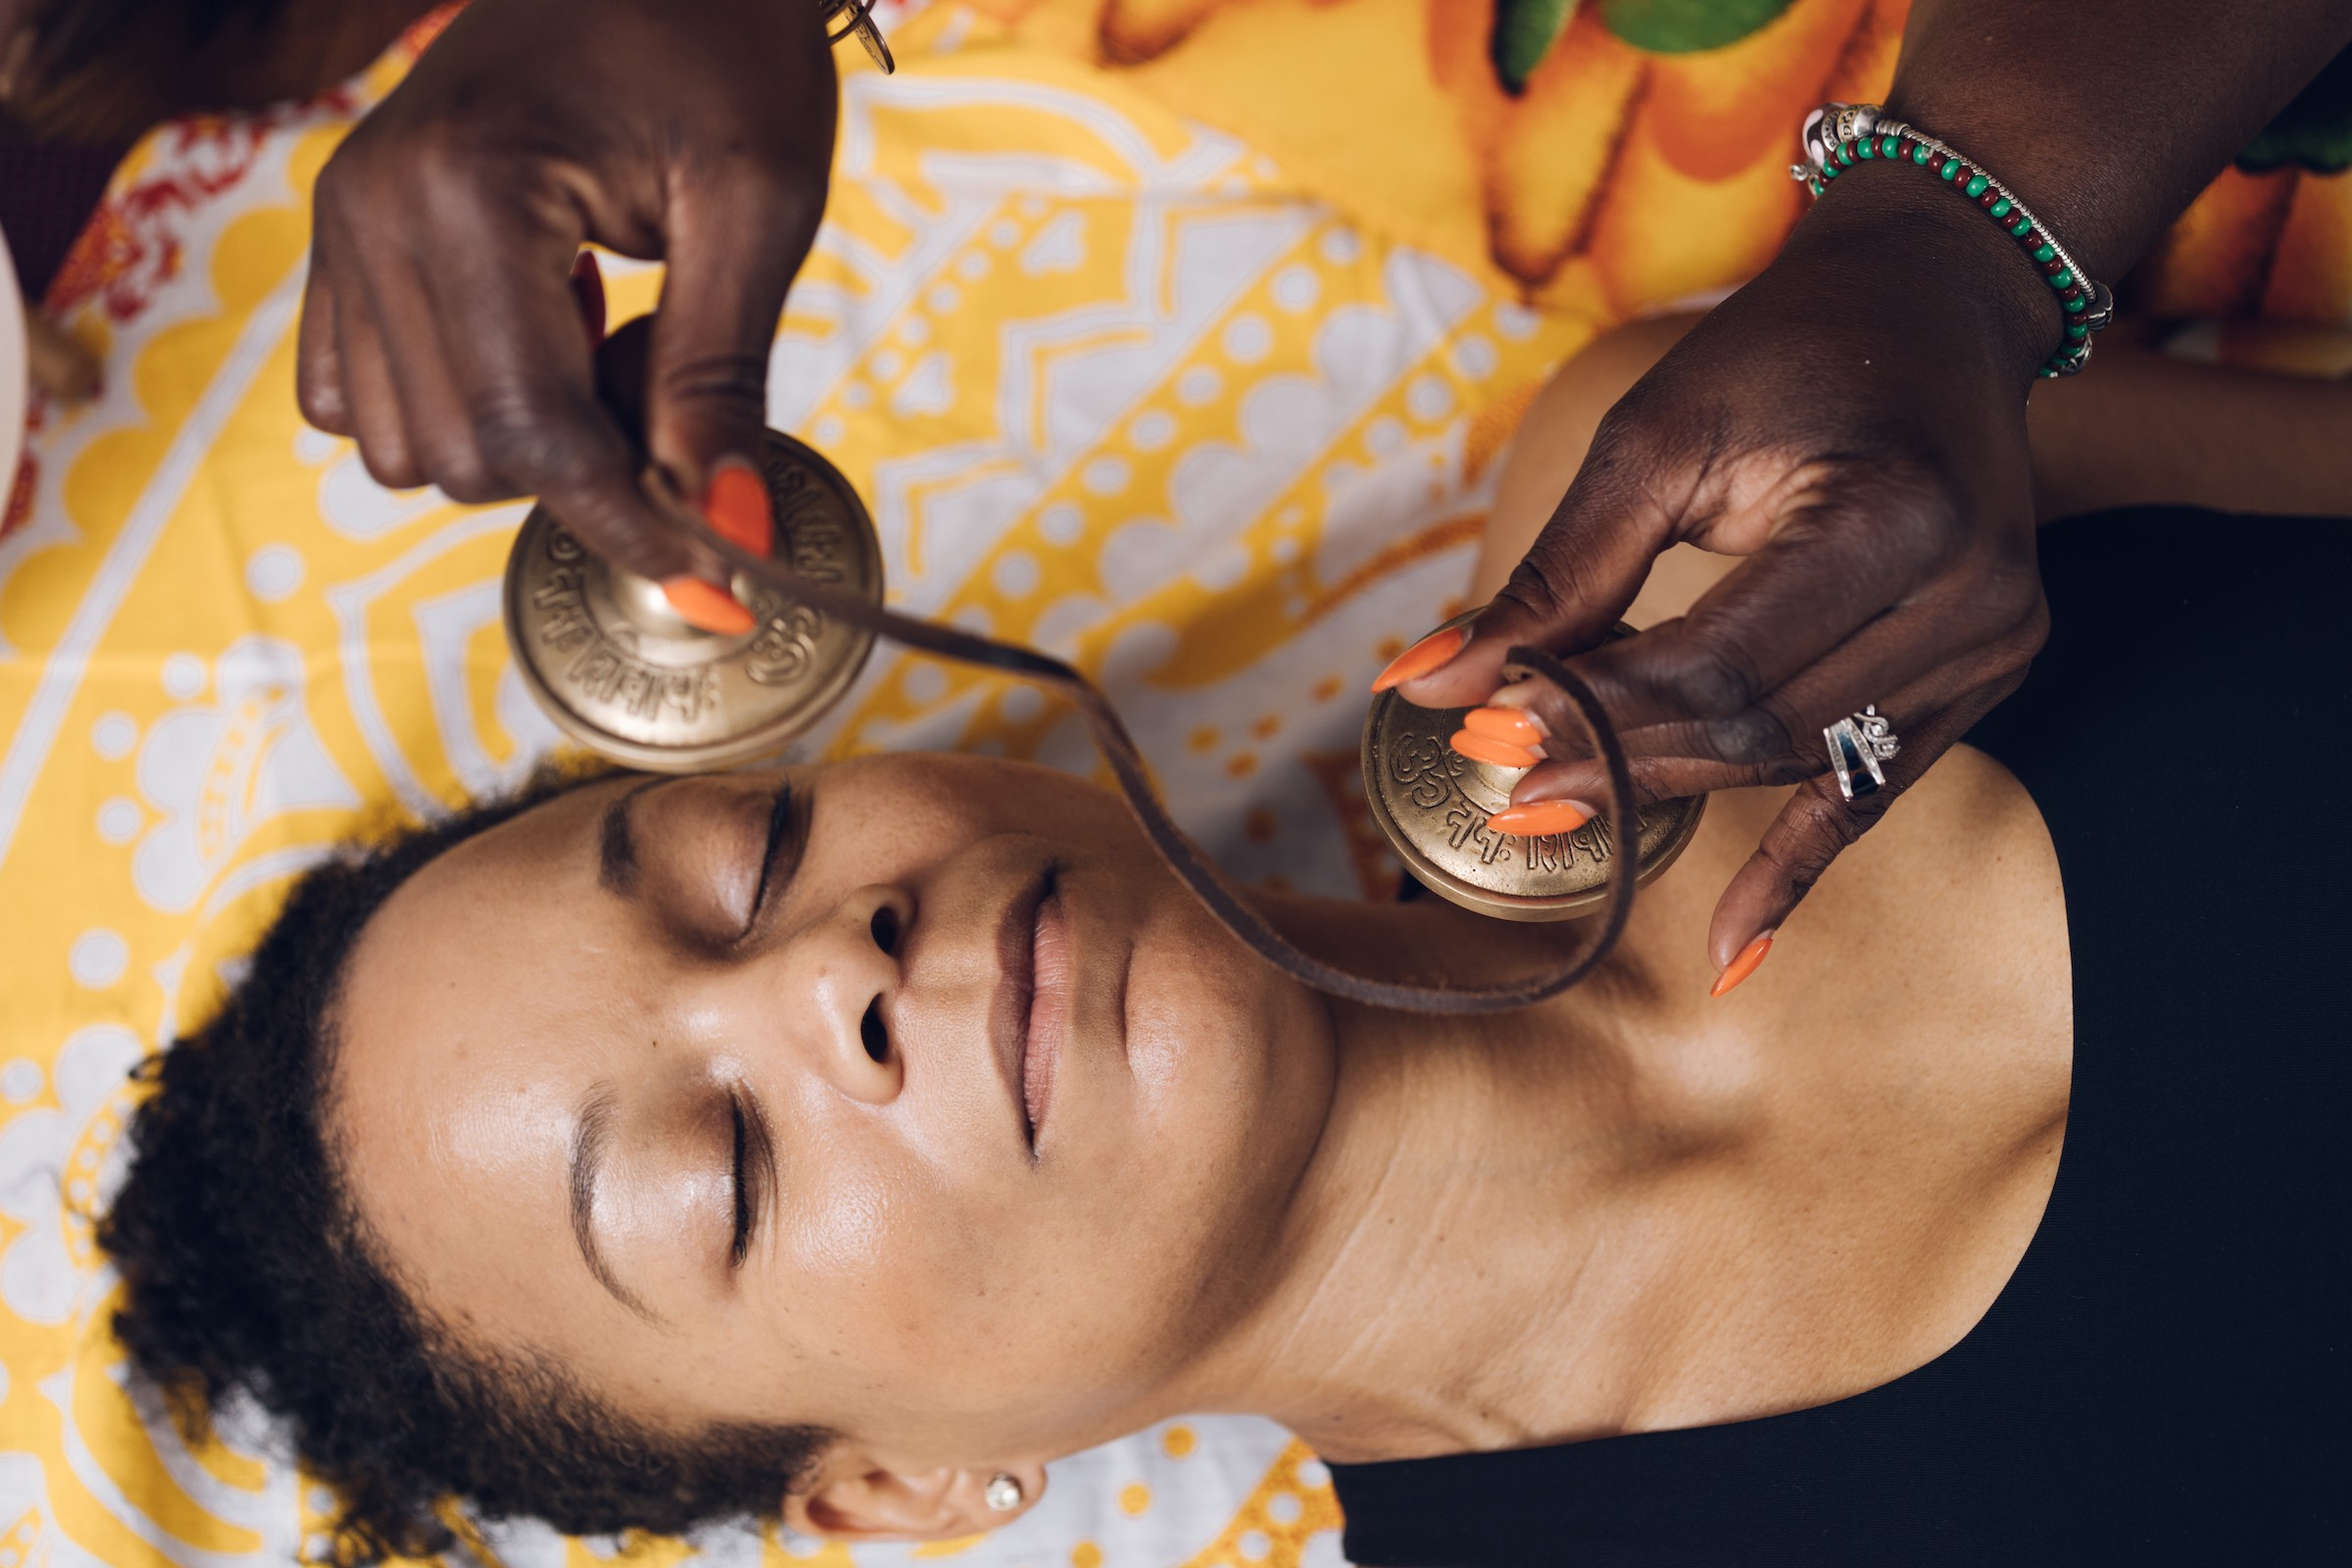 A holistic practitioner holding bells over the face and neck of a person lying on their back with their eyes closed.